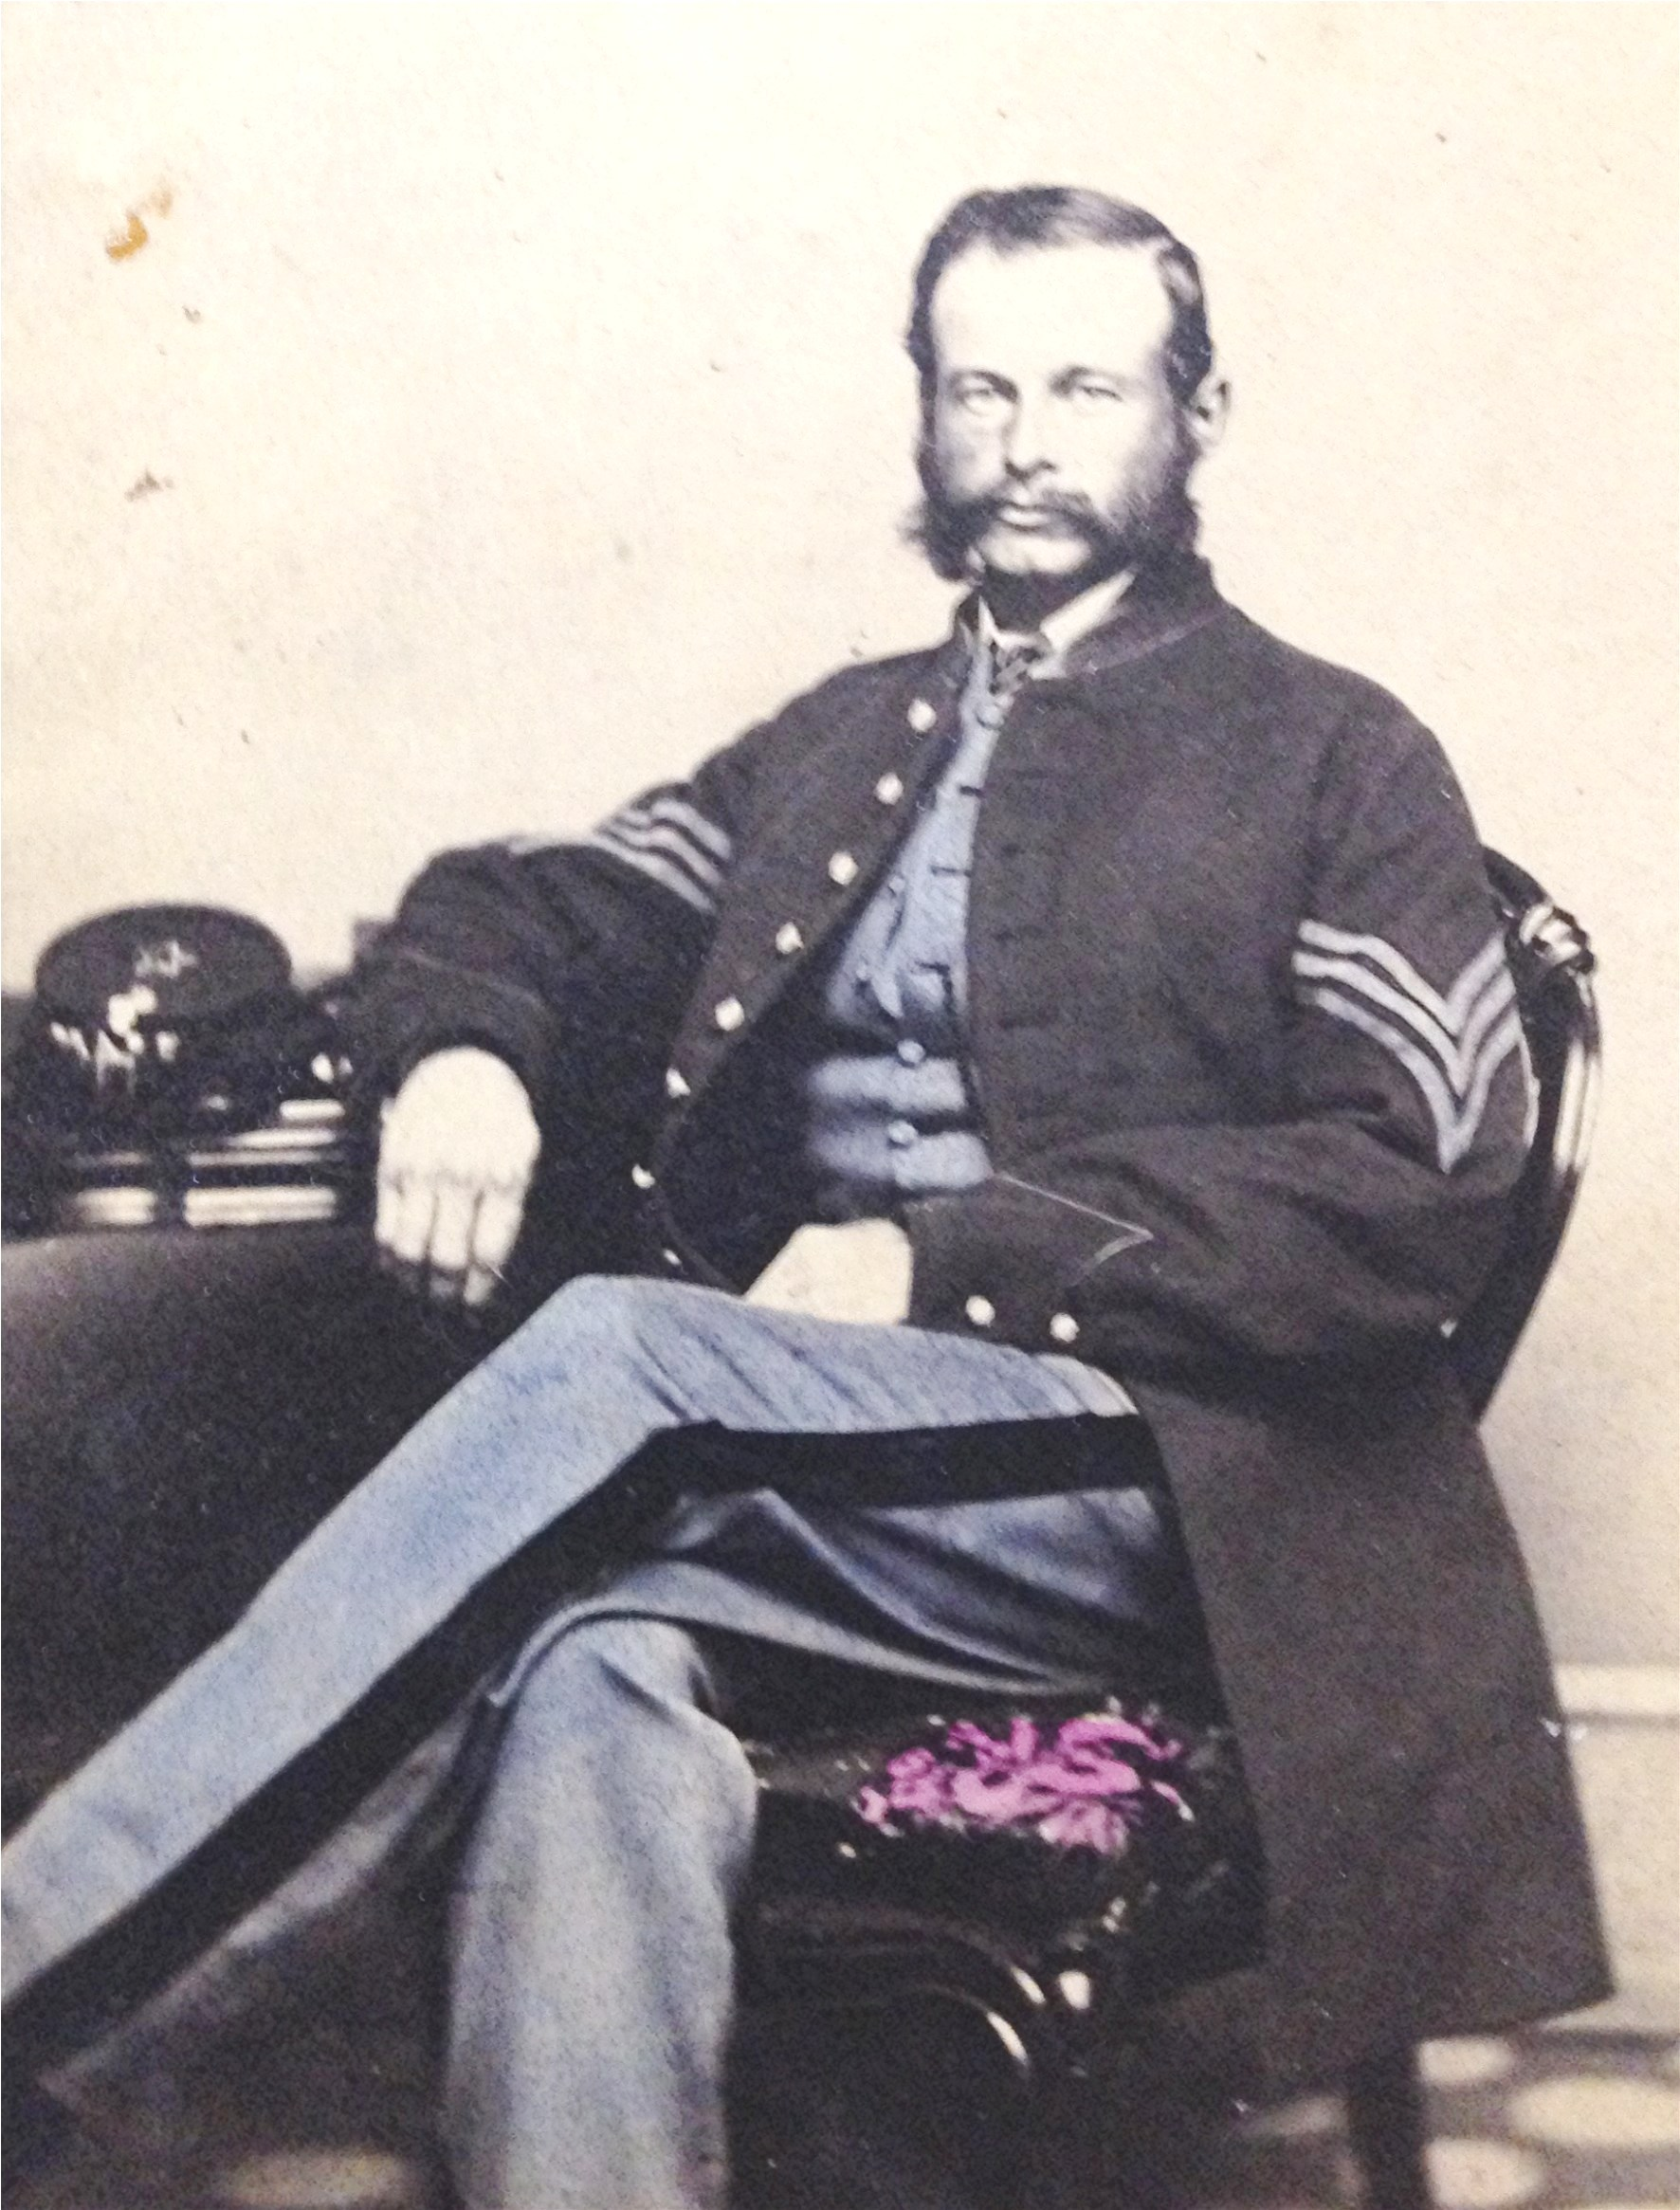 image of Sgt. John Emerson Anderson